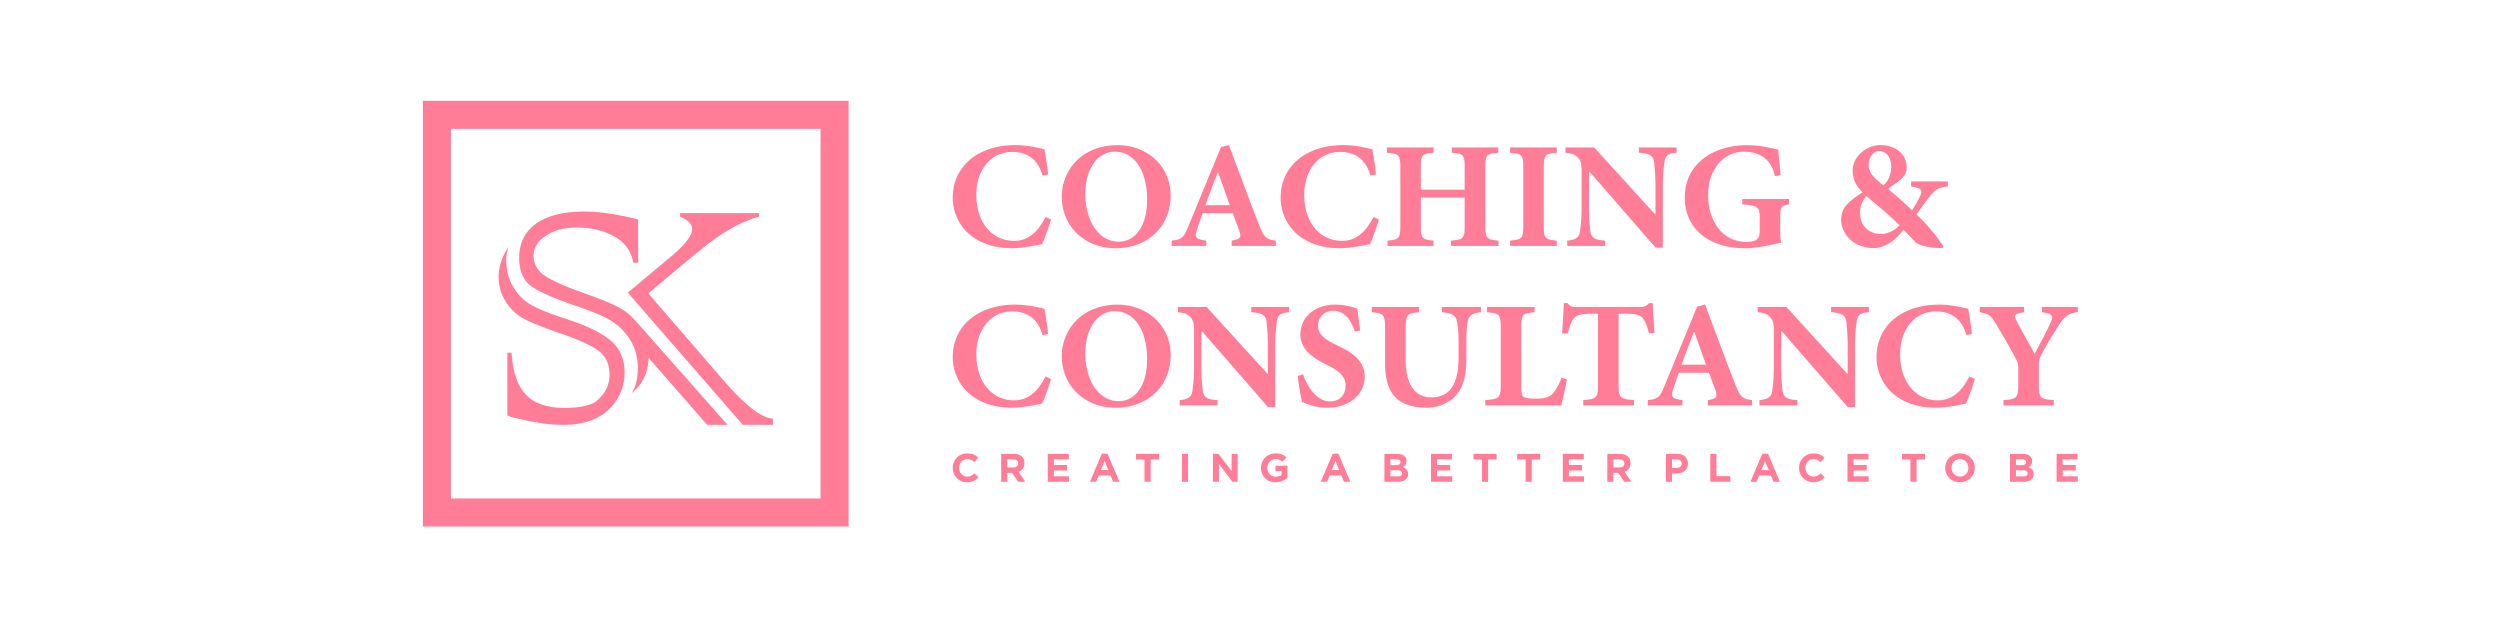 SK Coaching & Consultancy